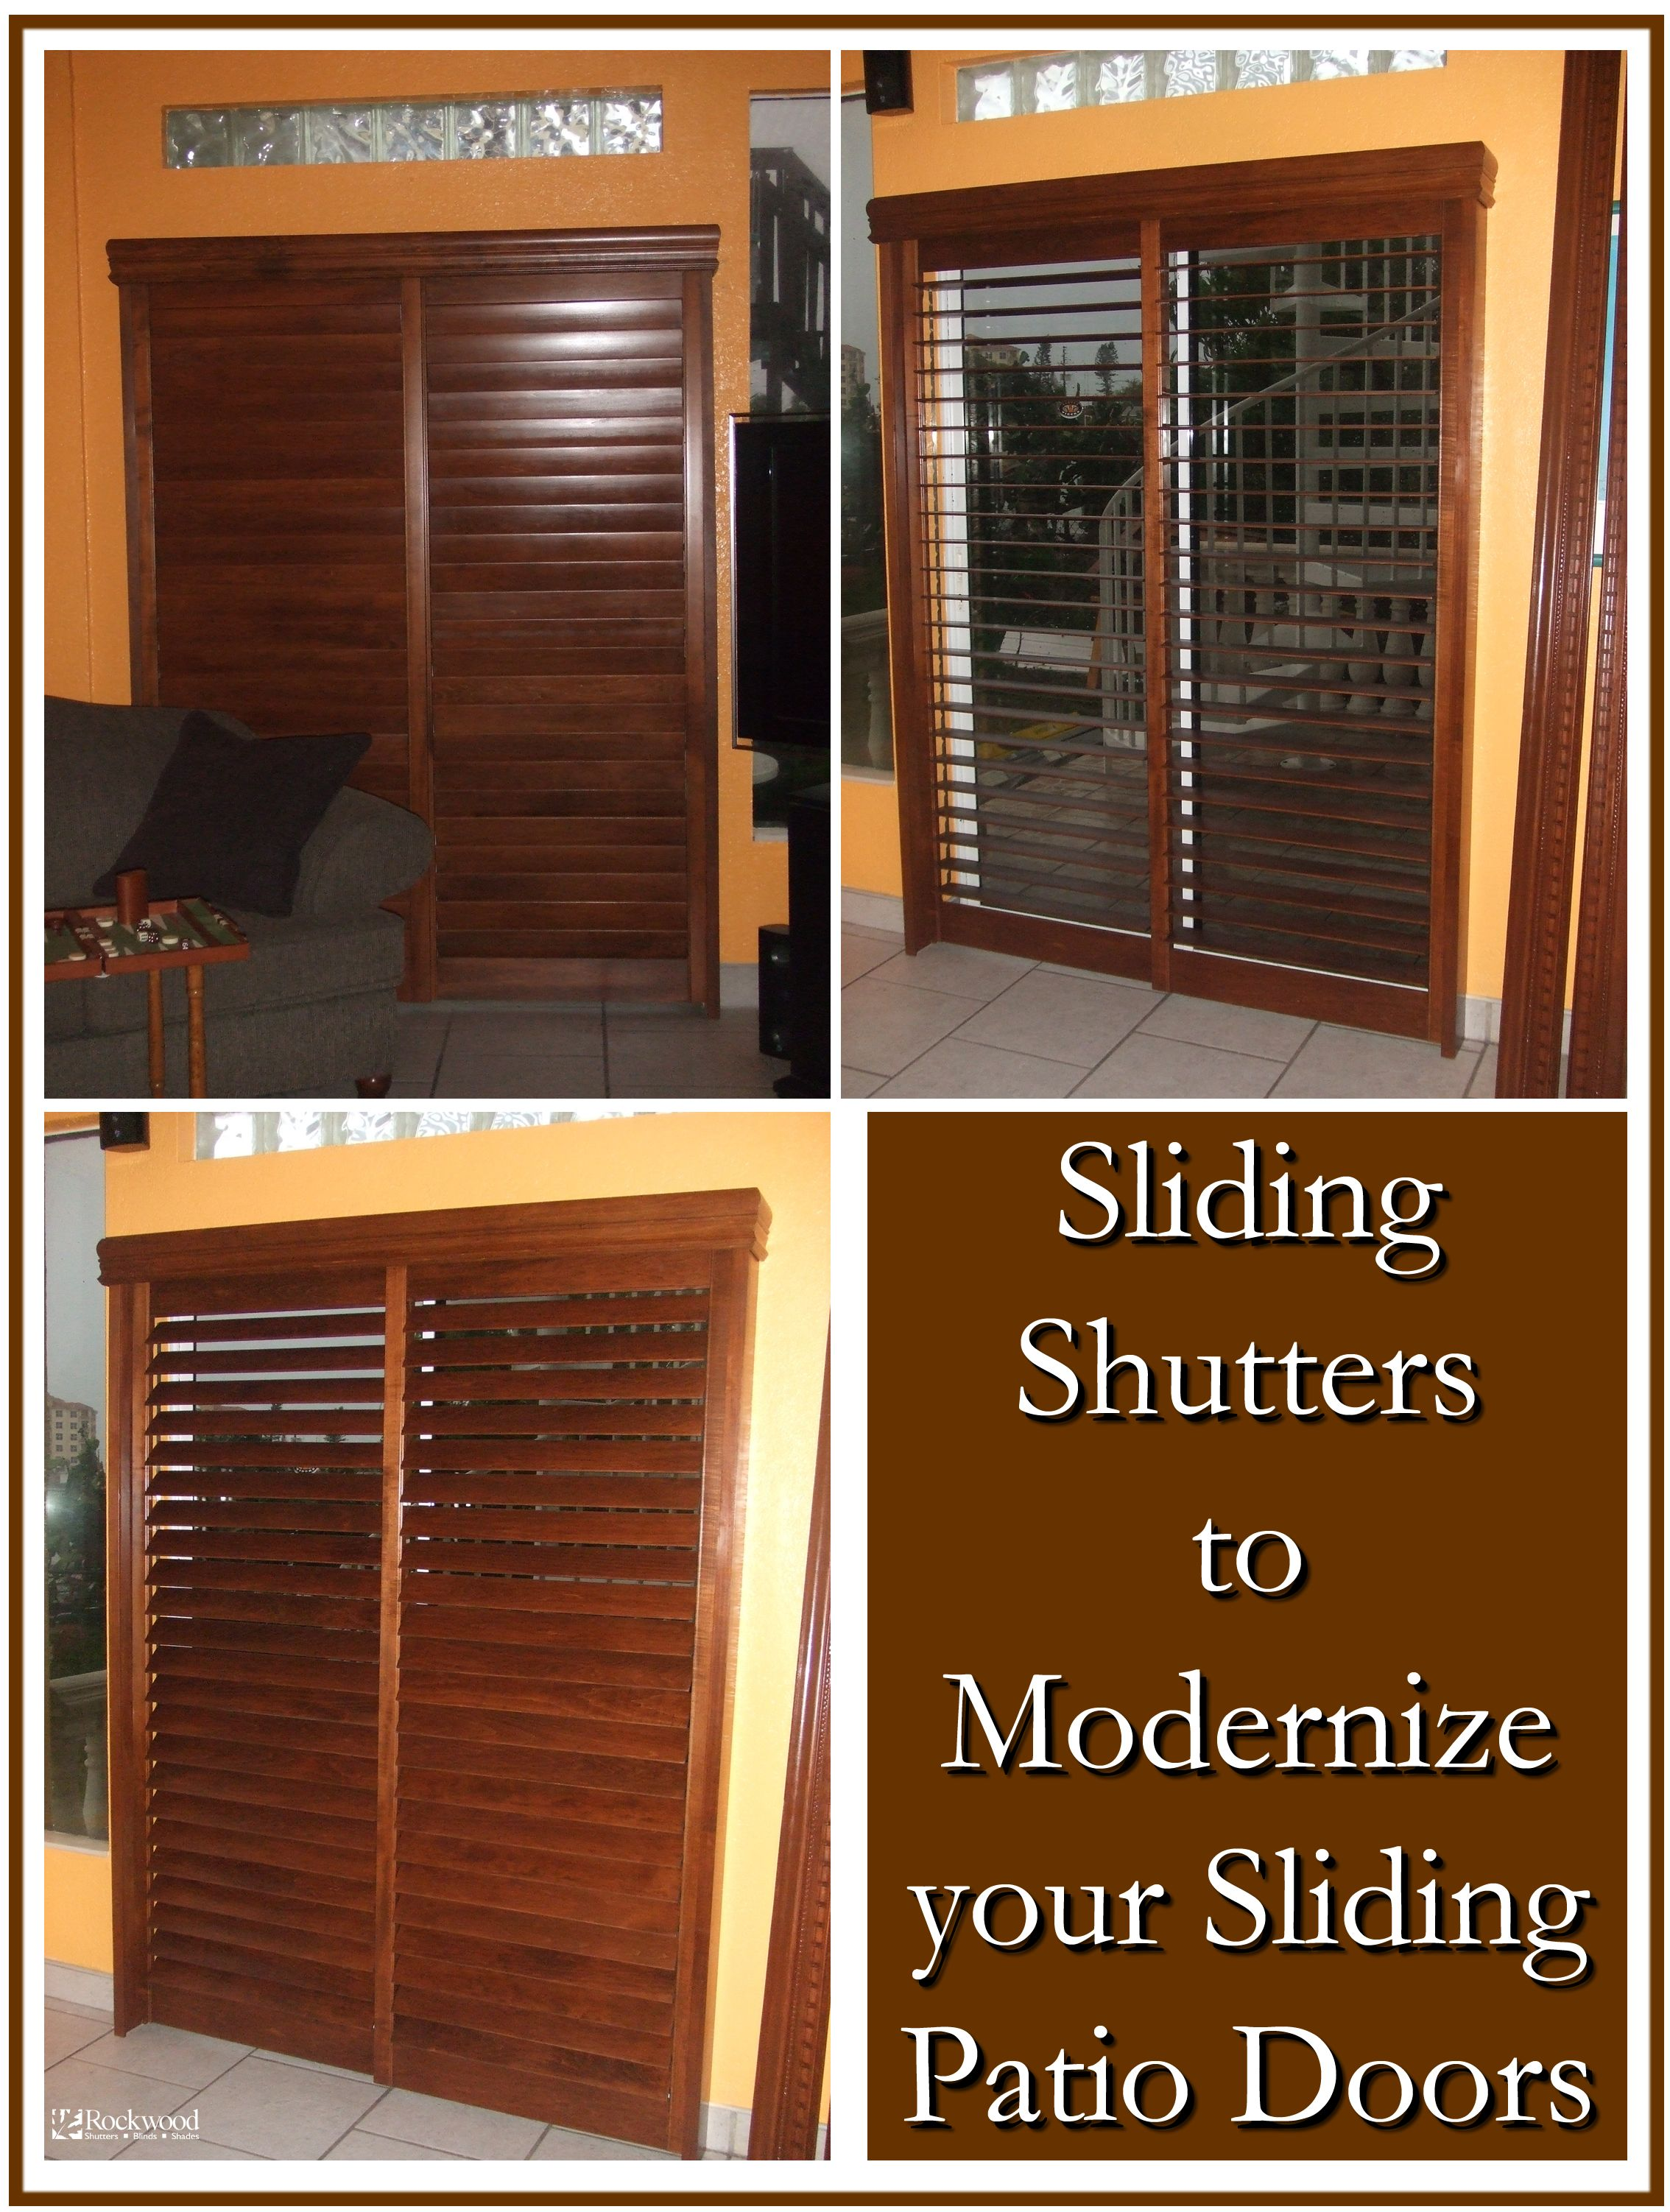 doors interior amazing design glass for sliding home curtain drapes maroon french stunning wooden patio roll frame stainless your in door steel between make look blinds up white using with blind window built shades